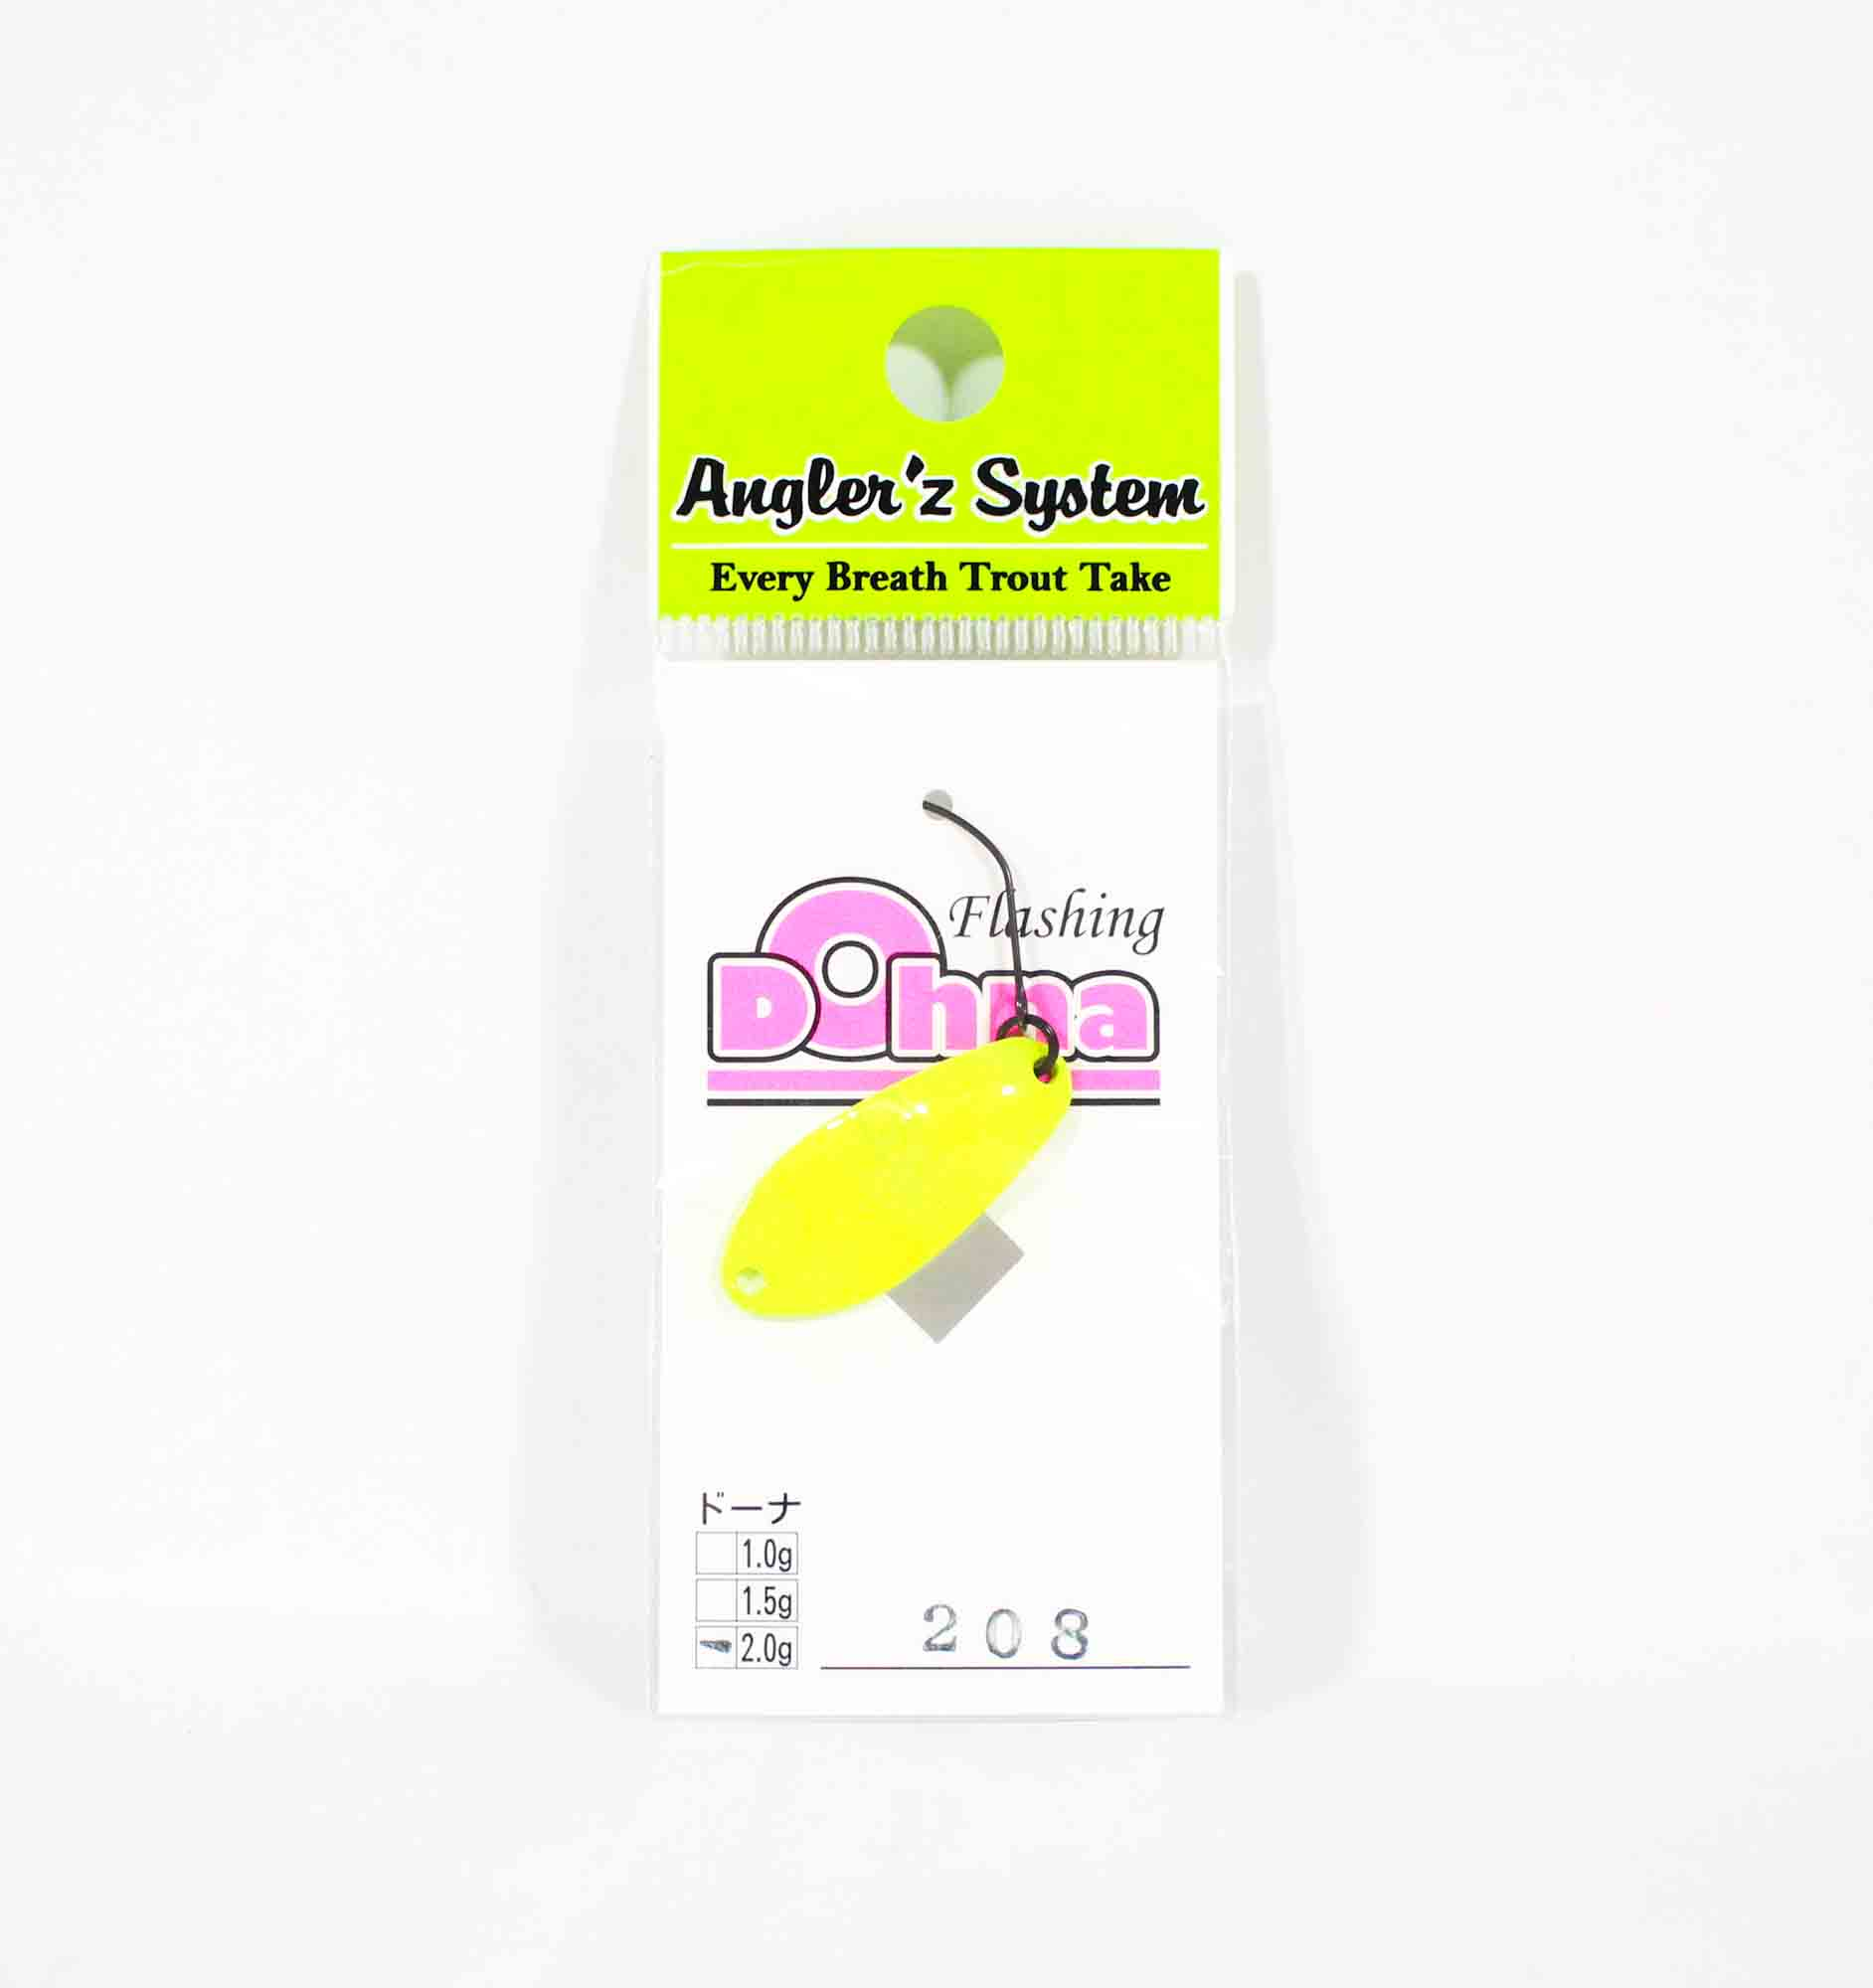 Anglers System Antem Dohna 2.0 grams Spoon Sinking Lure 208 (4374)